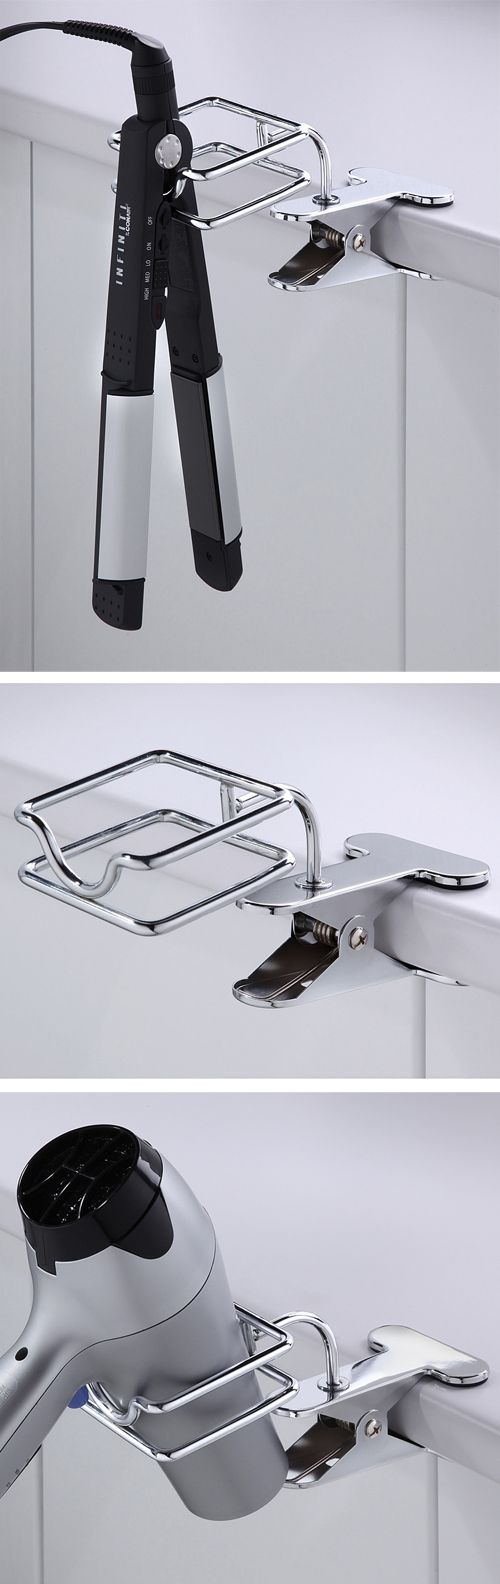 Clip on blow dryer & flat iron / hair straightener holder // genius! I need this product in my bathroom!